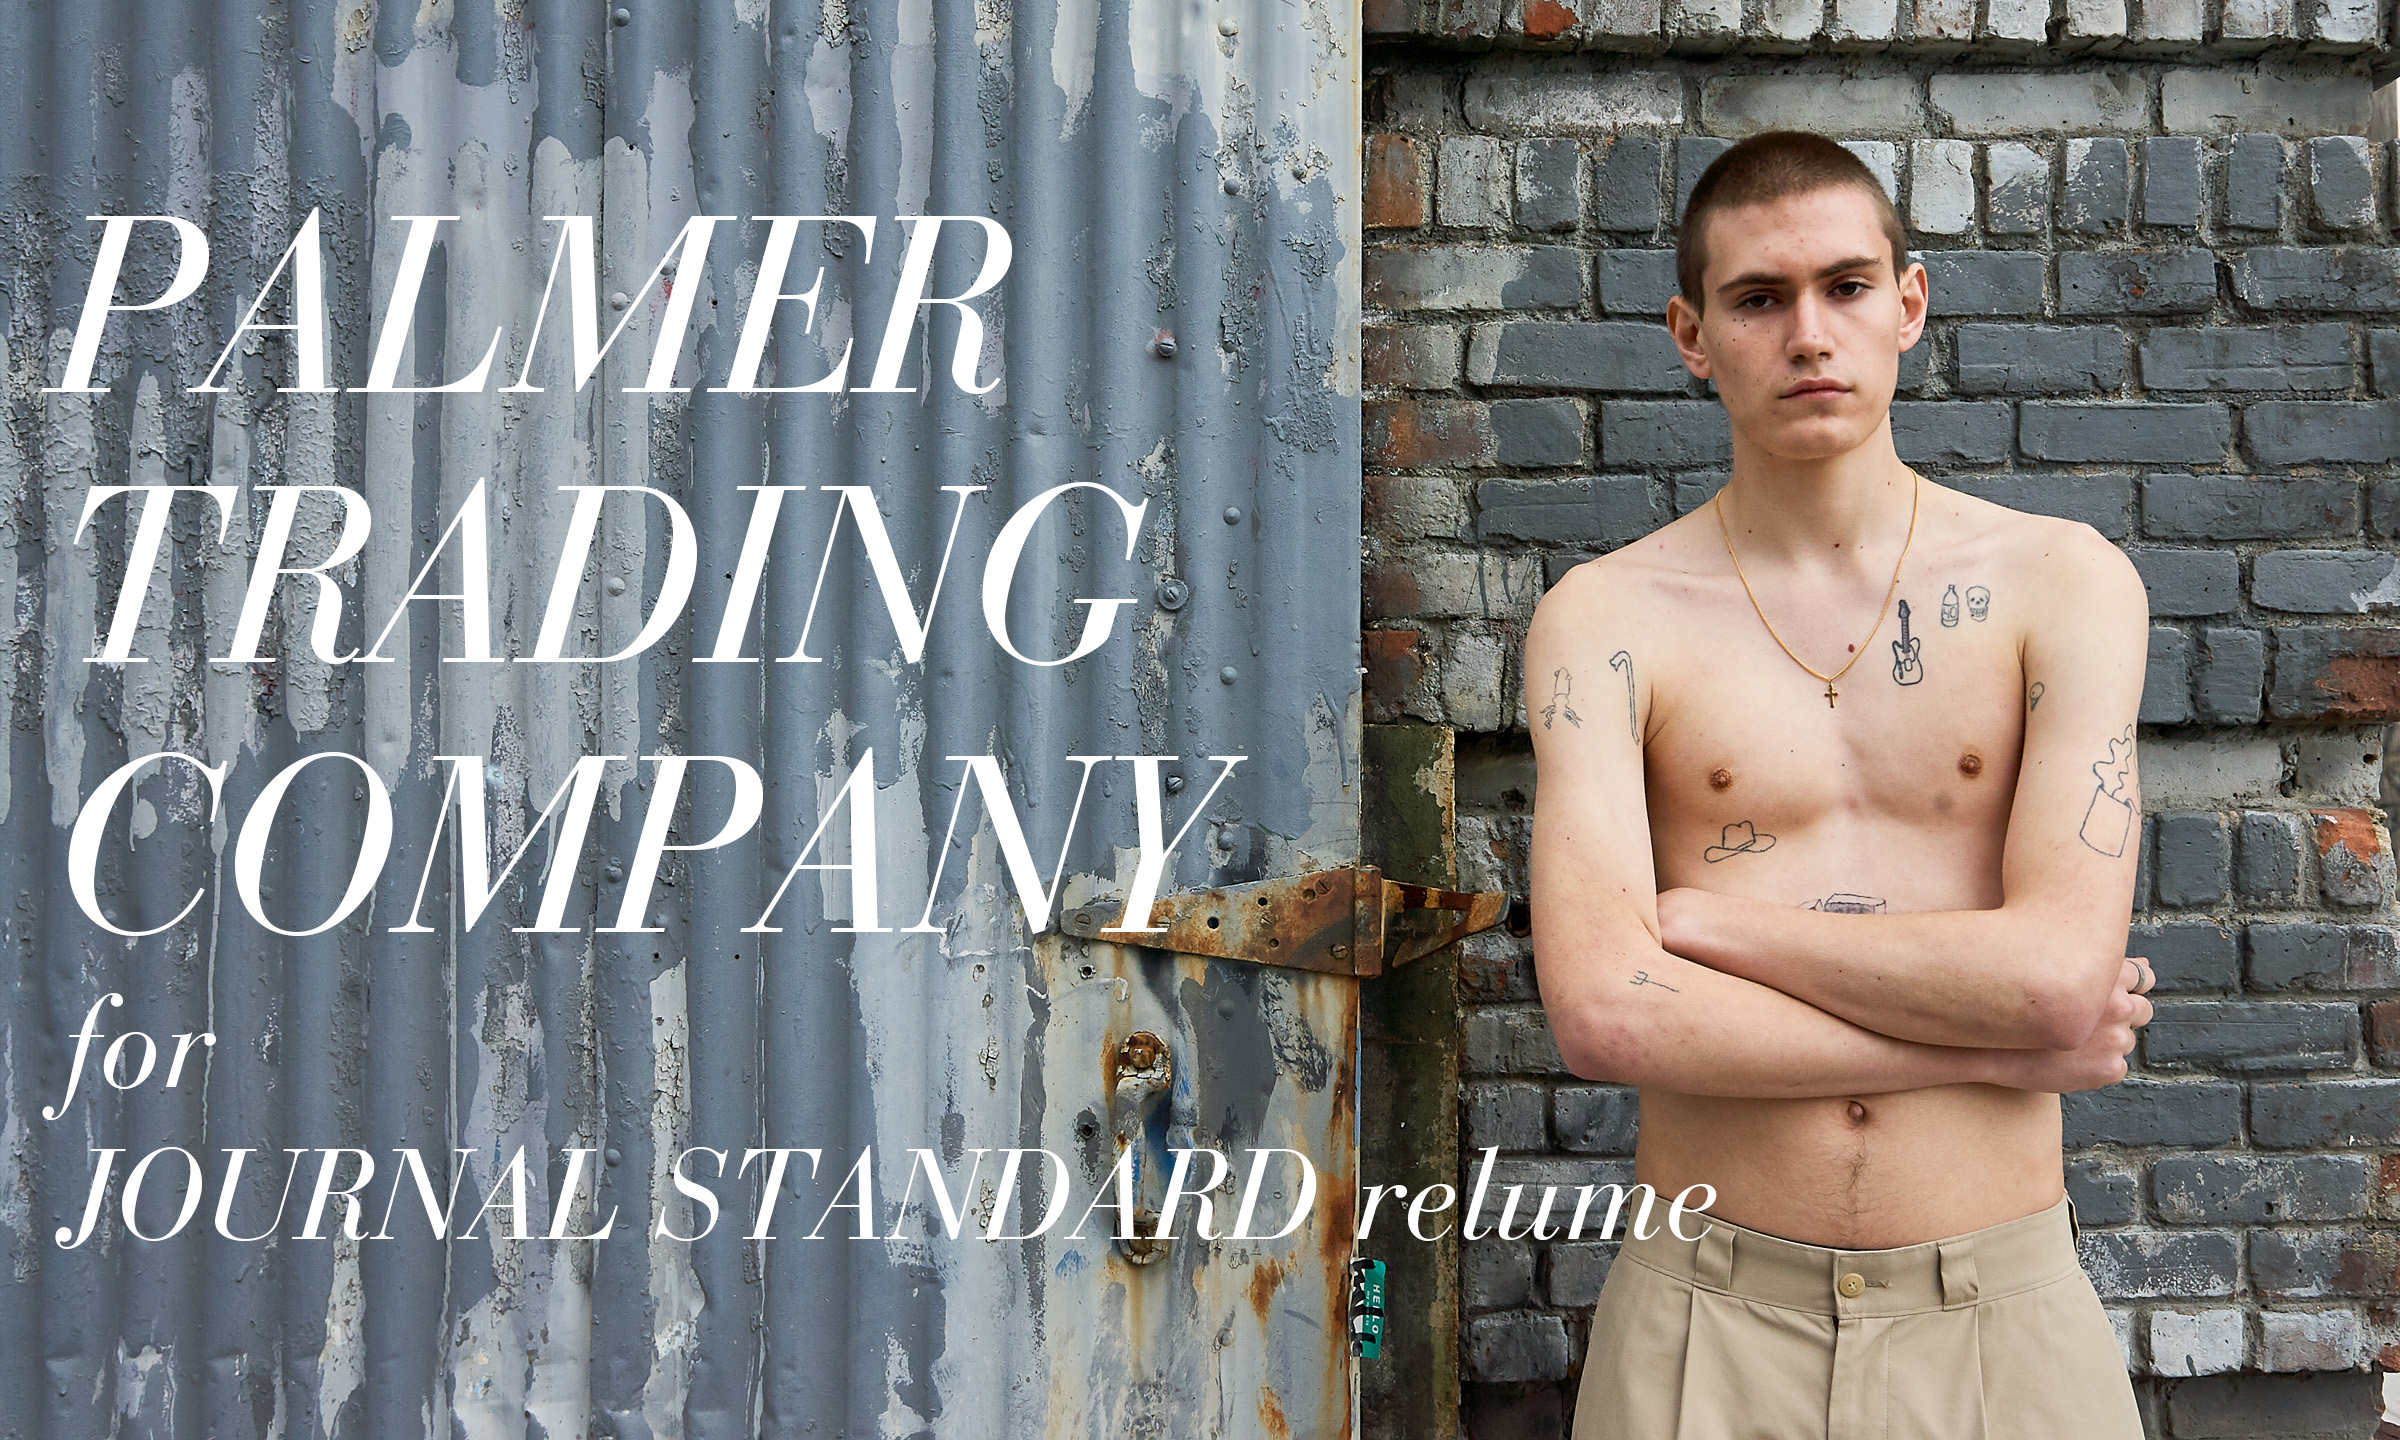 """少年院""がテーマのRUDO注目ウェアが誕生 -PALMER TRADING COMPANY for JOURNAL STANDARD relume-"